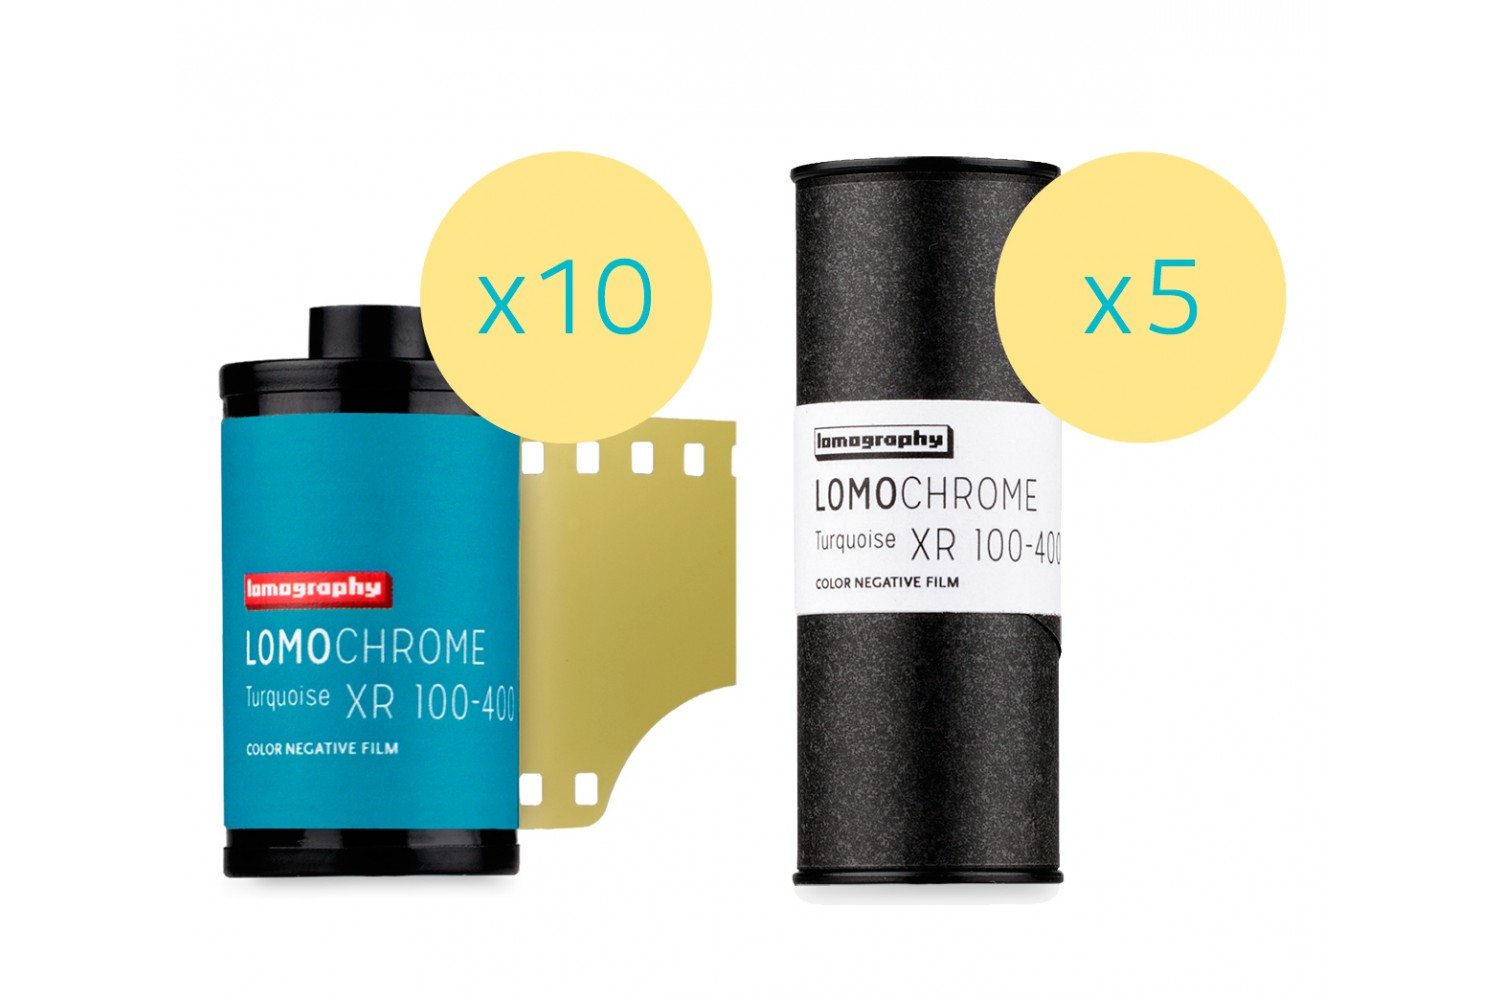 Lomography LomoChrome Turquoise XR 100-400 Mixed Formats 15 Rolls - 35mm